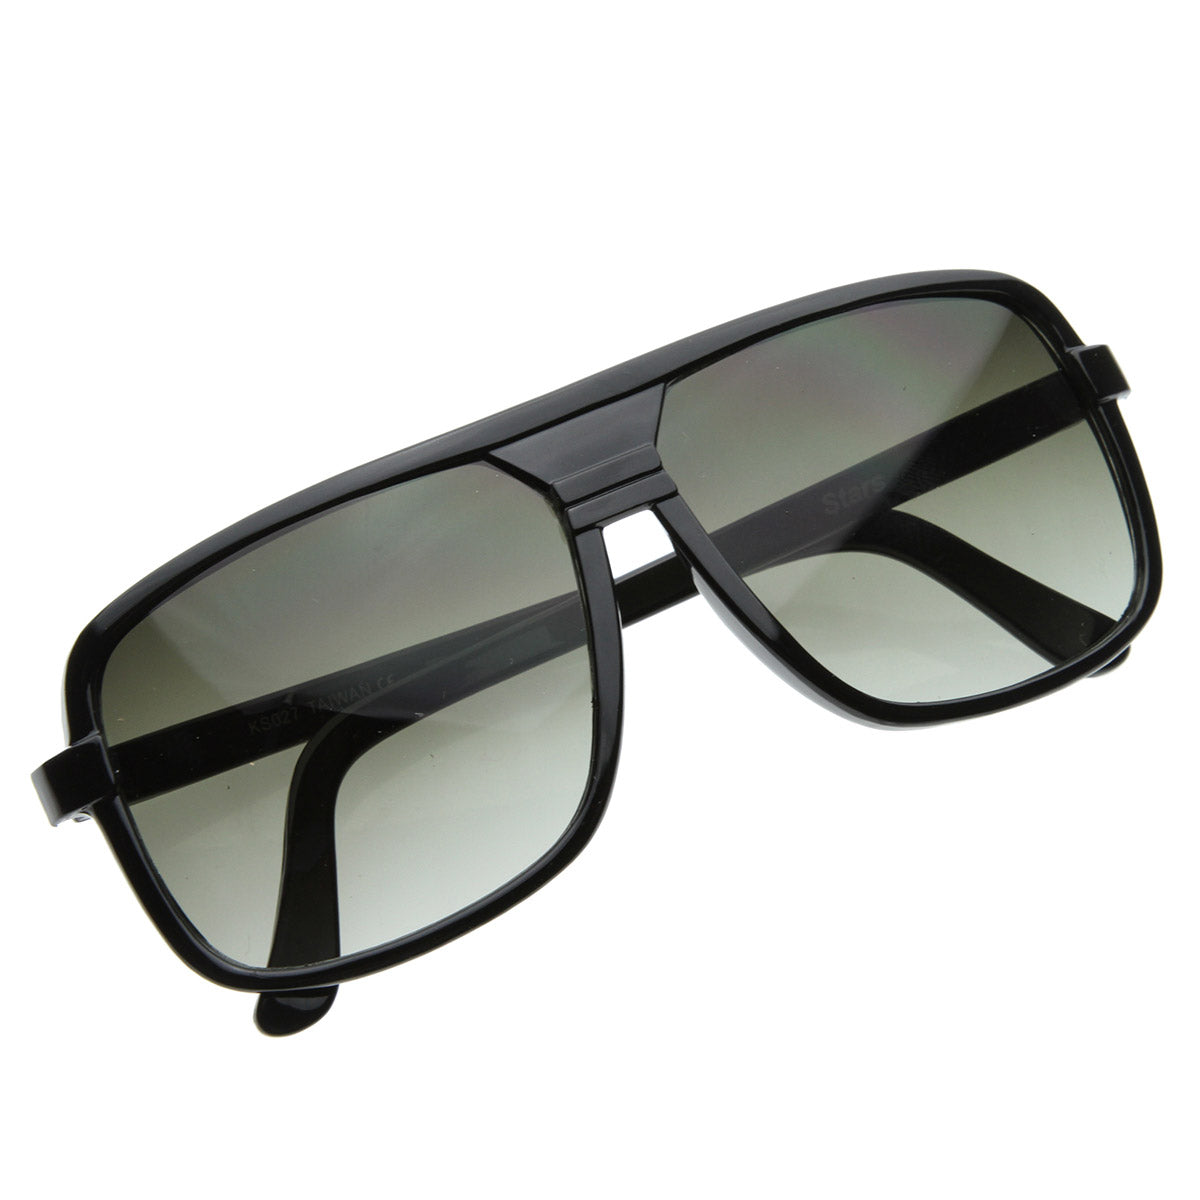 Classic Square Plastic Aviator Sunglasses Shades